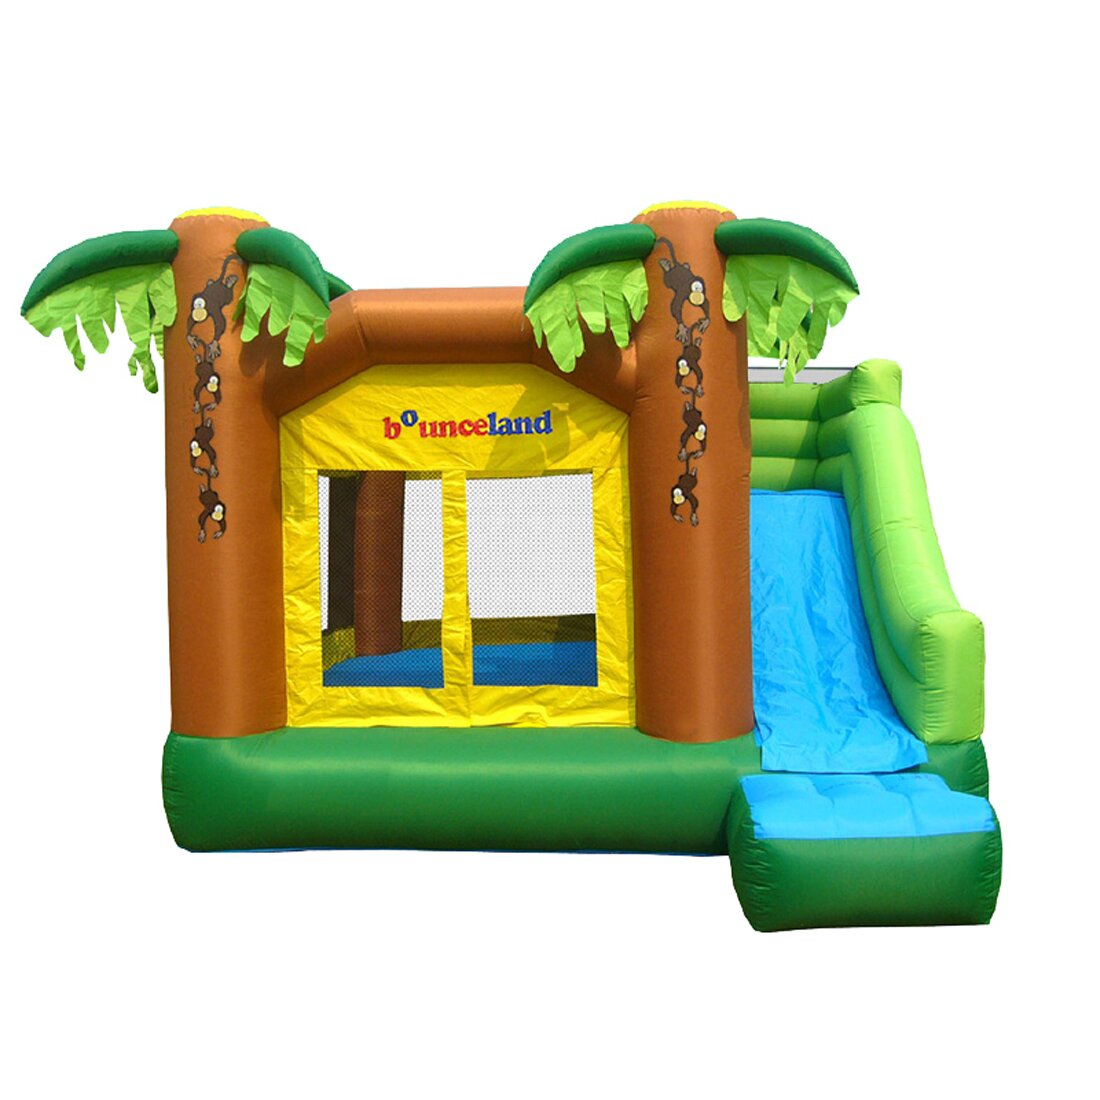 Bounceland Jungle Bounce House Amp Reviews Wayfair